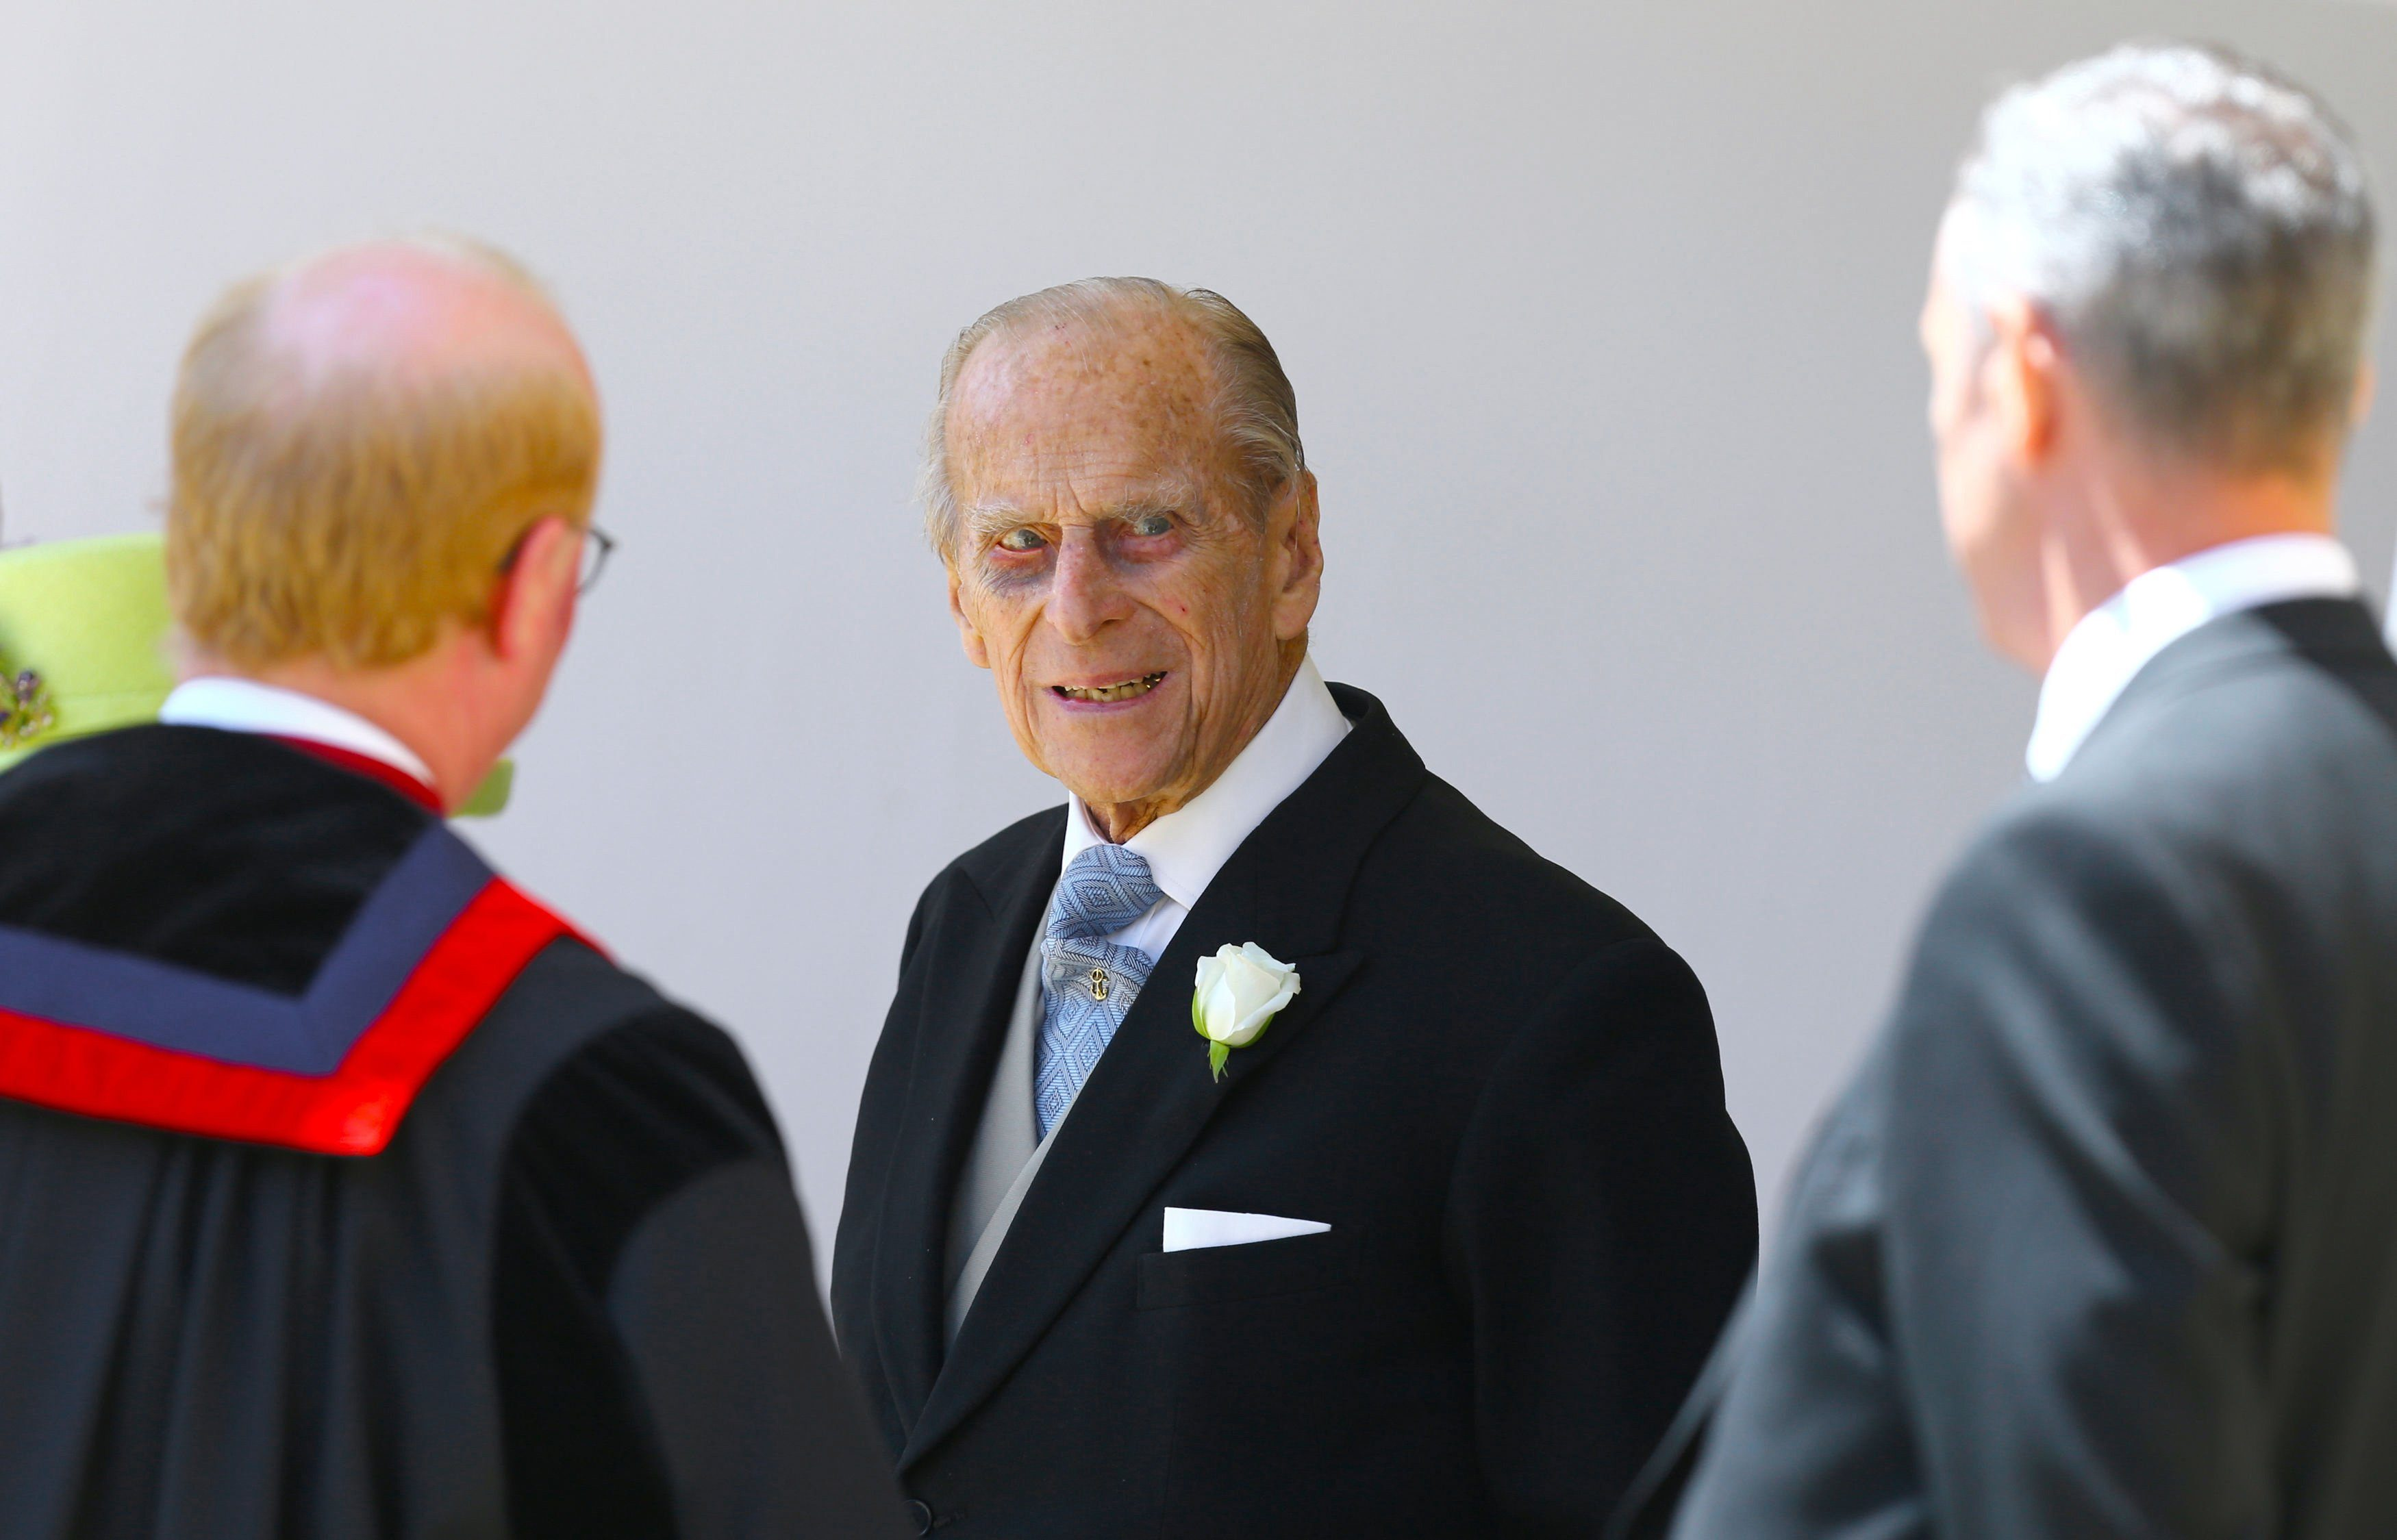 Mandatory Credit: Photo by Shutterstock (9685436hw) Prince Philip The wedding of Prince Harry and Meghan Markle, Ceremony, St George's Chapel, Windsor Castle, Berkshire, UK - 19 May 2018